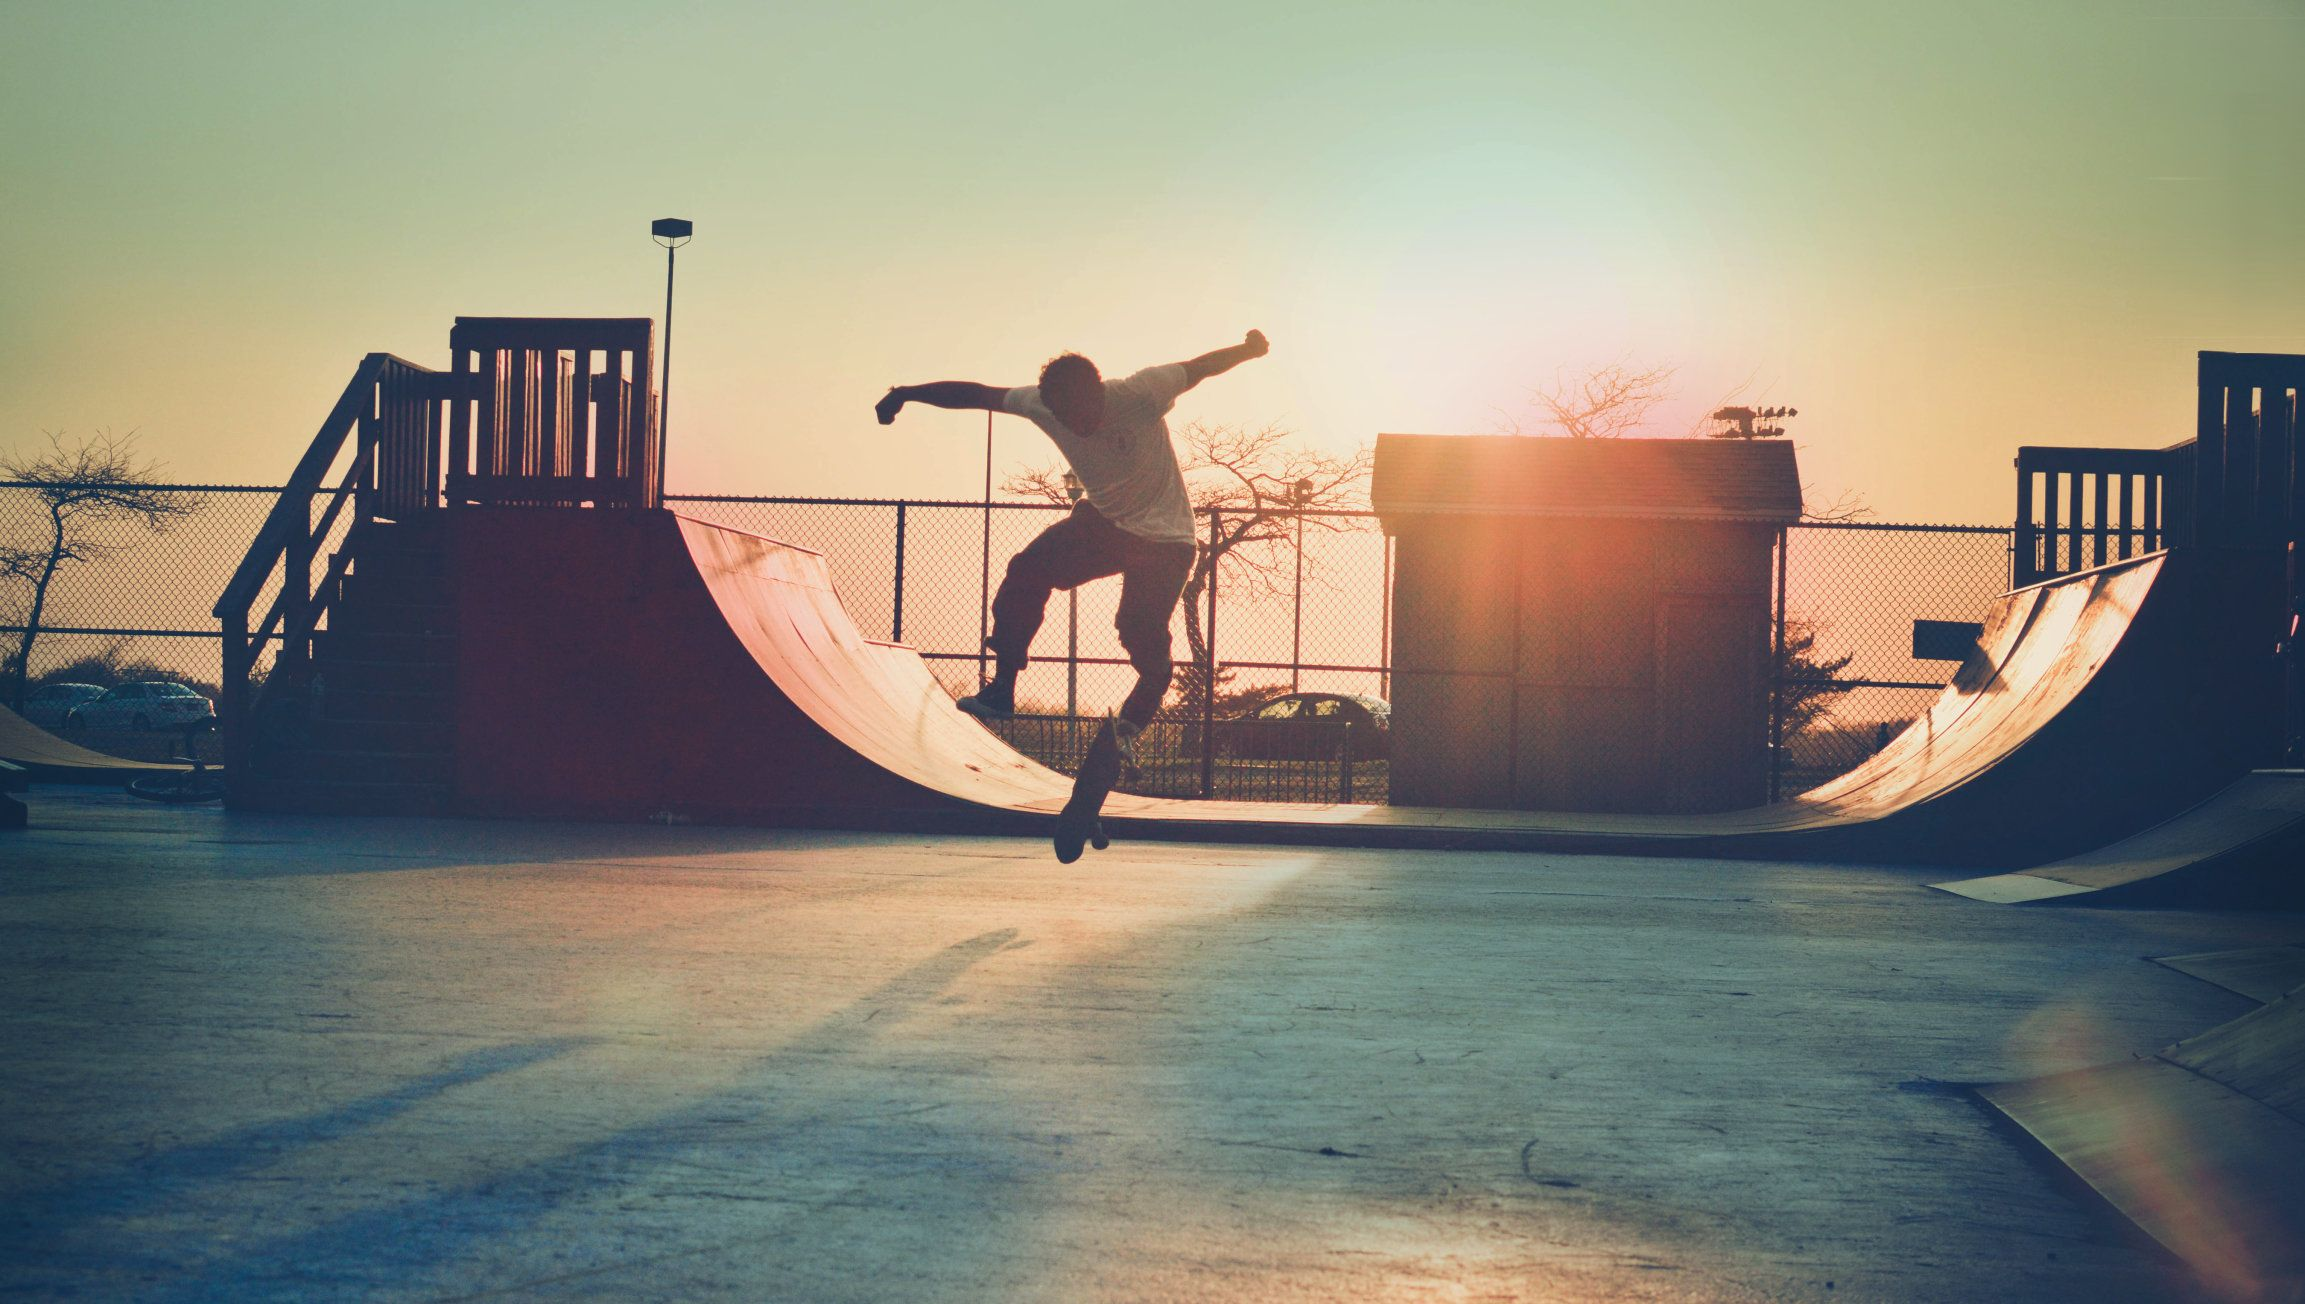 Every day, 176 kids go the emergency room with skateboarding injuries. Eighty-nine percent of those injured were males.